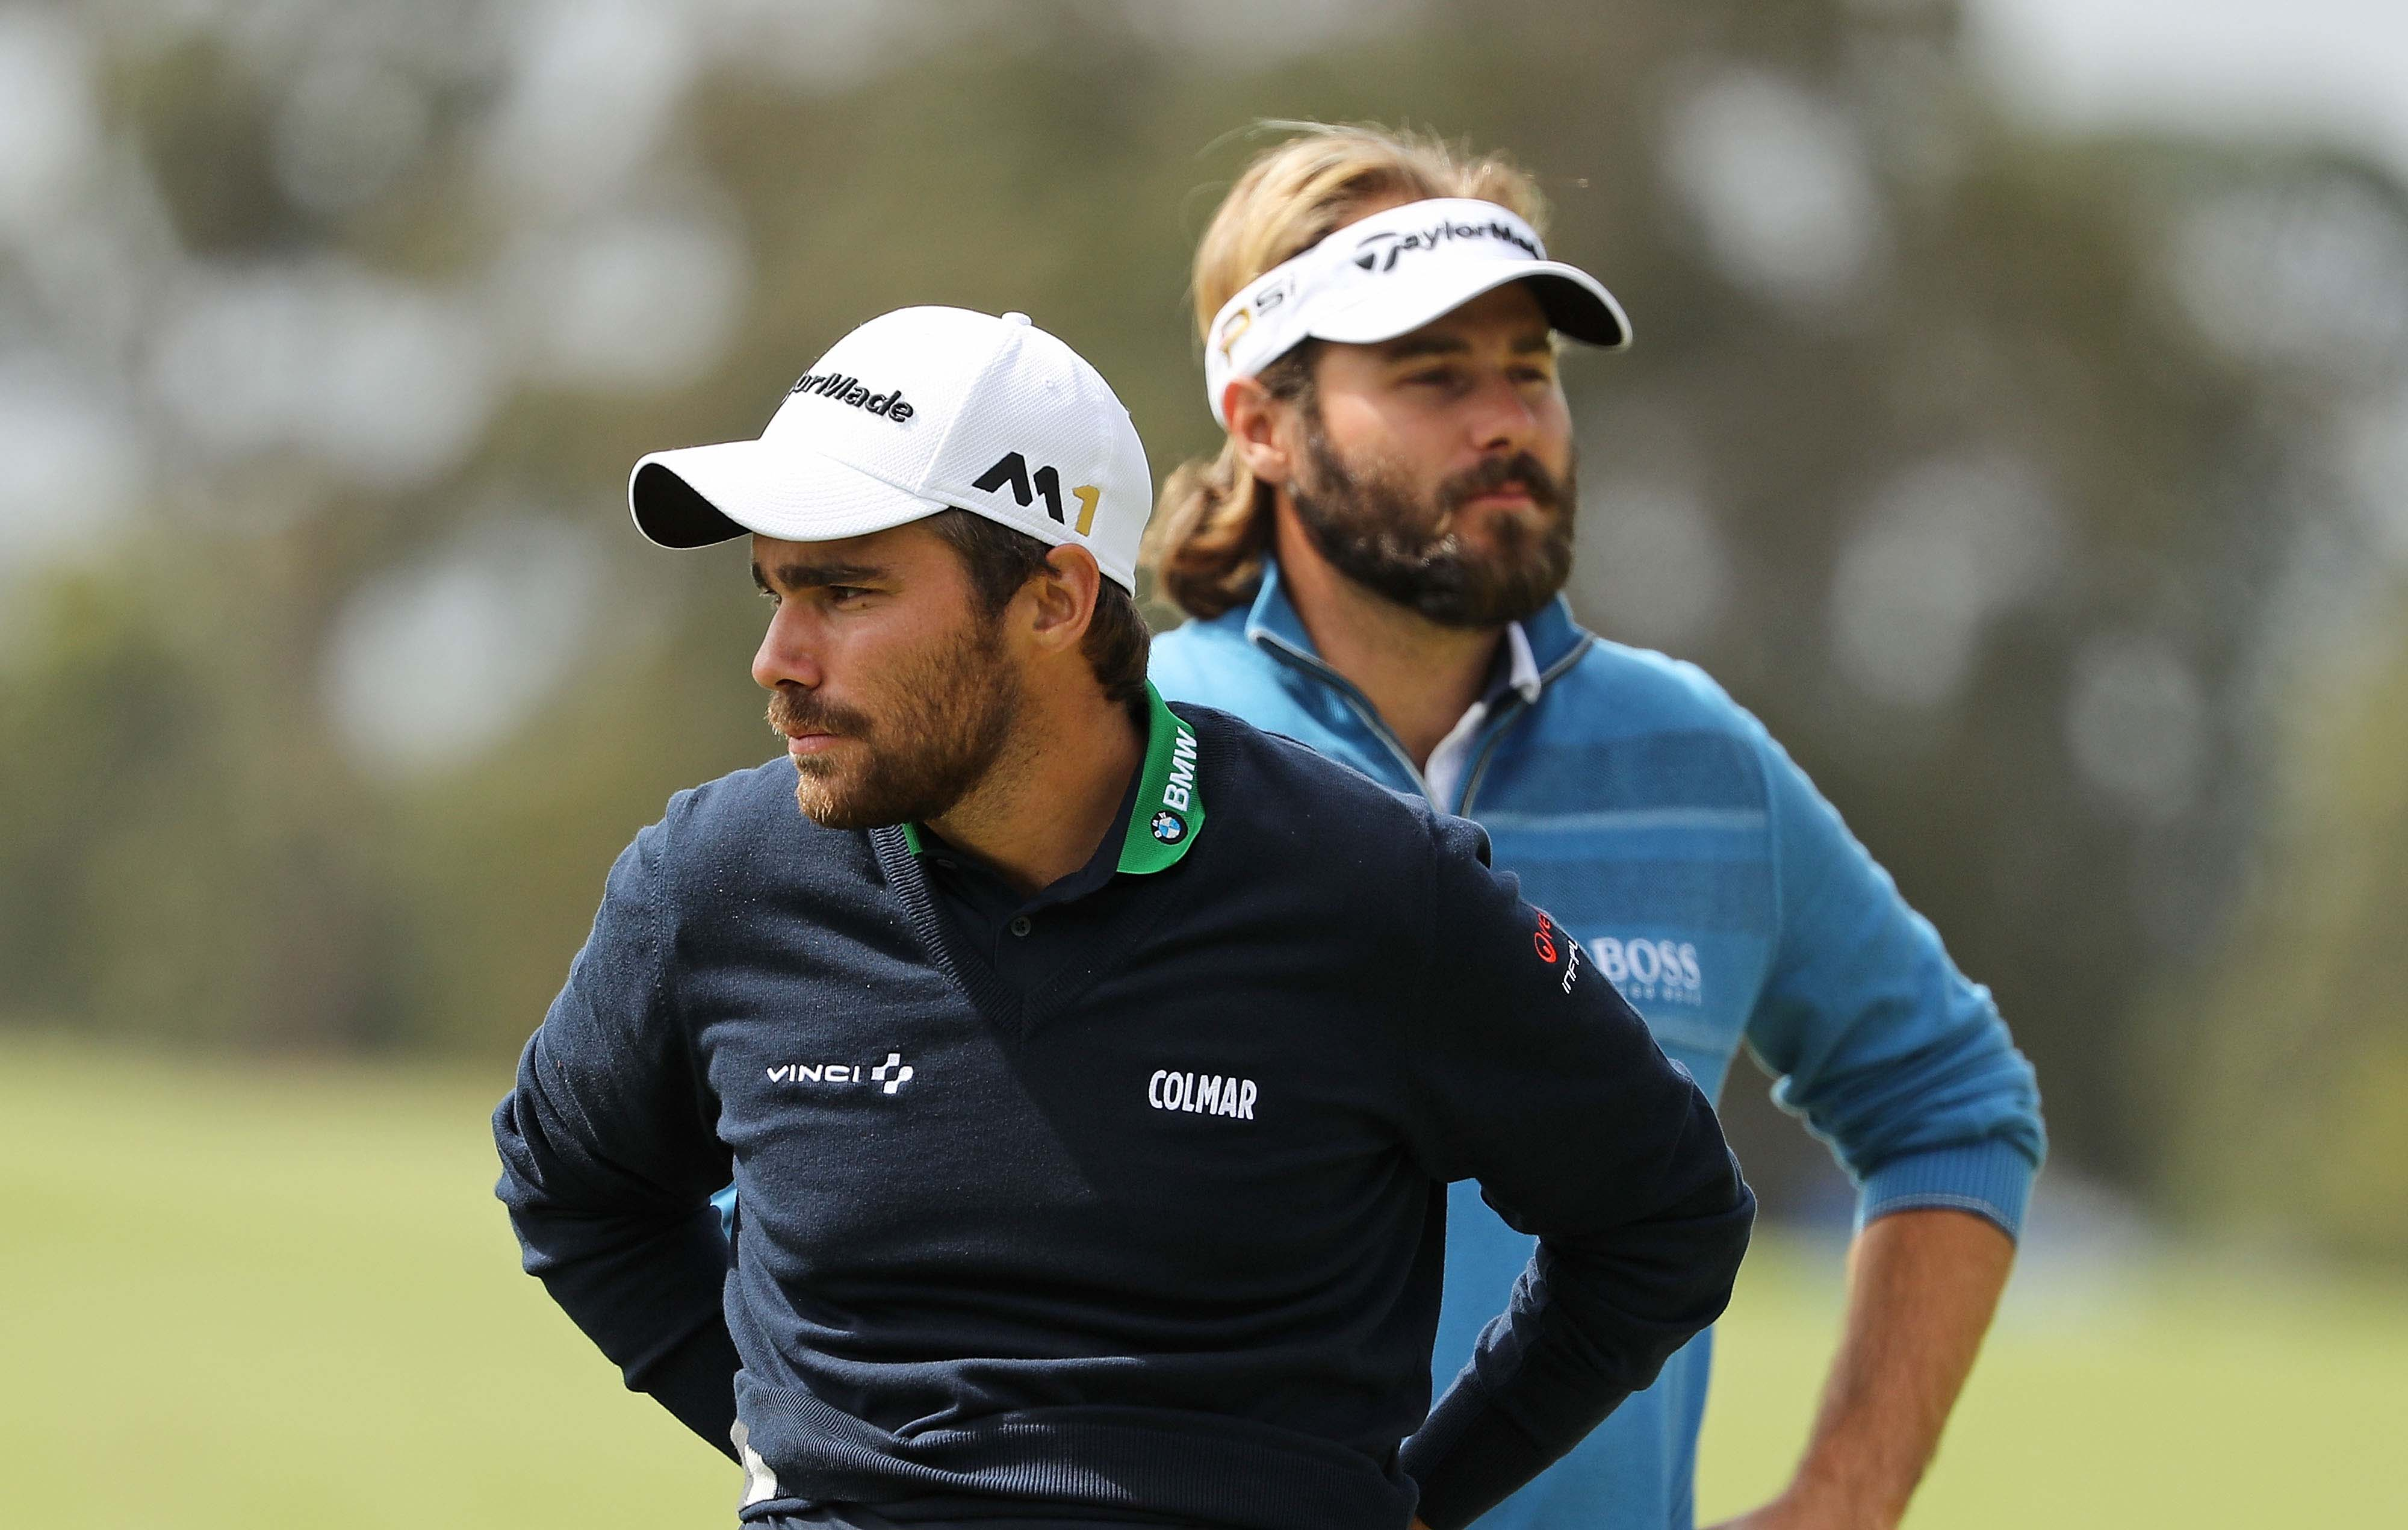 Victor Dubuisson and Romain Langasque